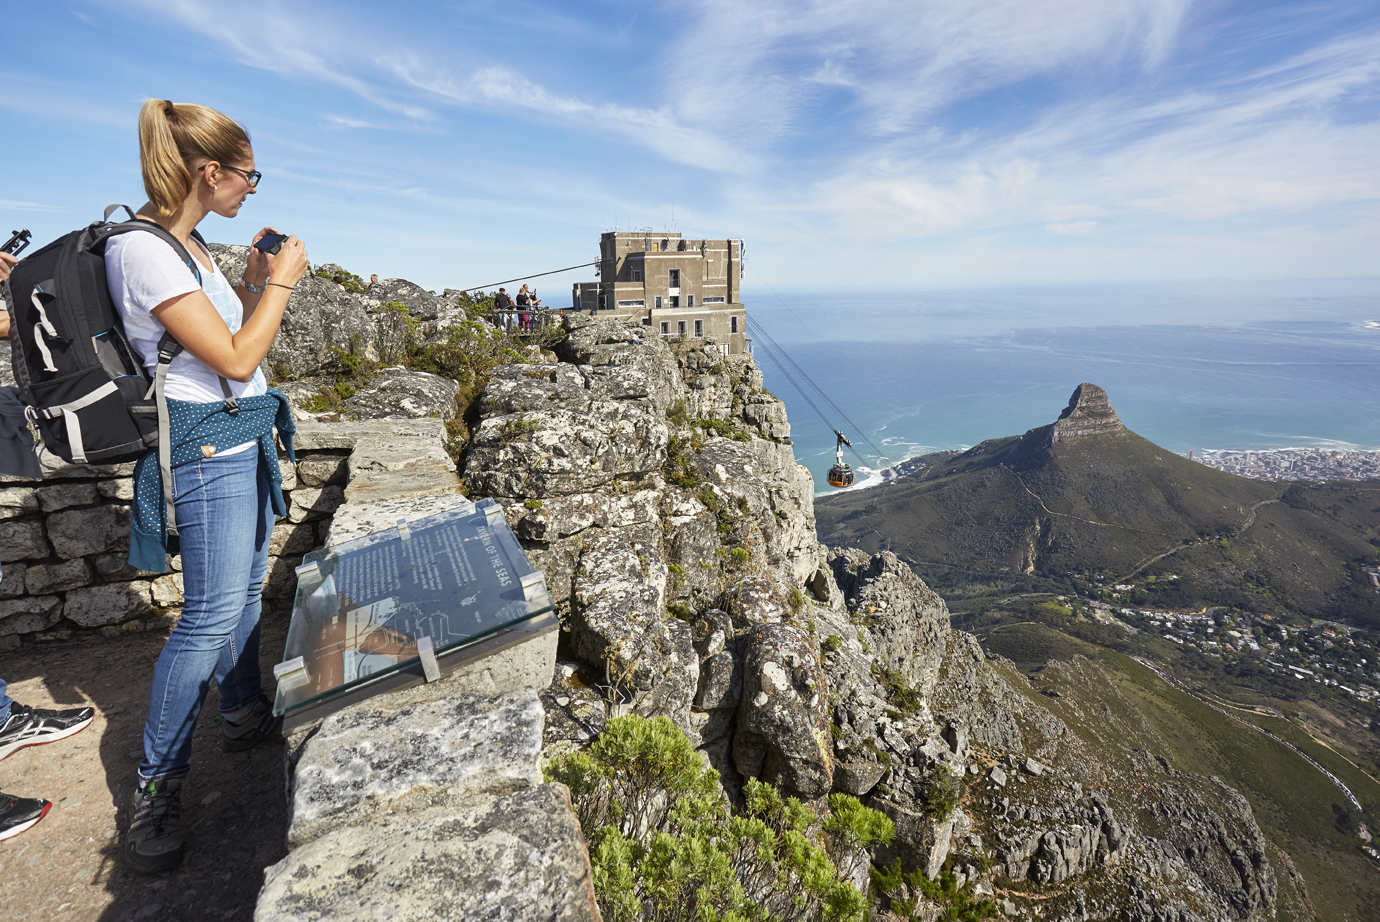 CELEBRATE THE CABLEWAY'S 'COMEBACK SPECIAL'